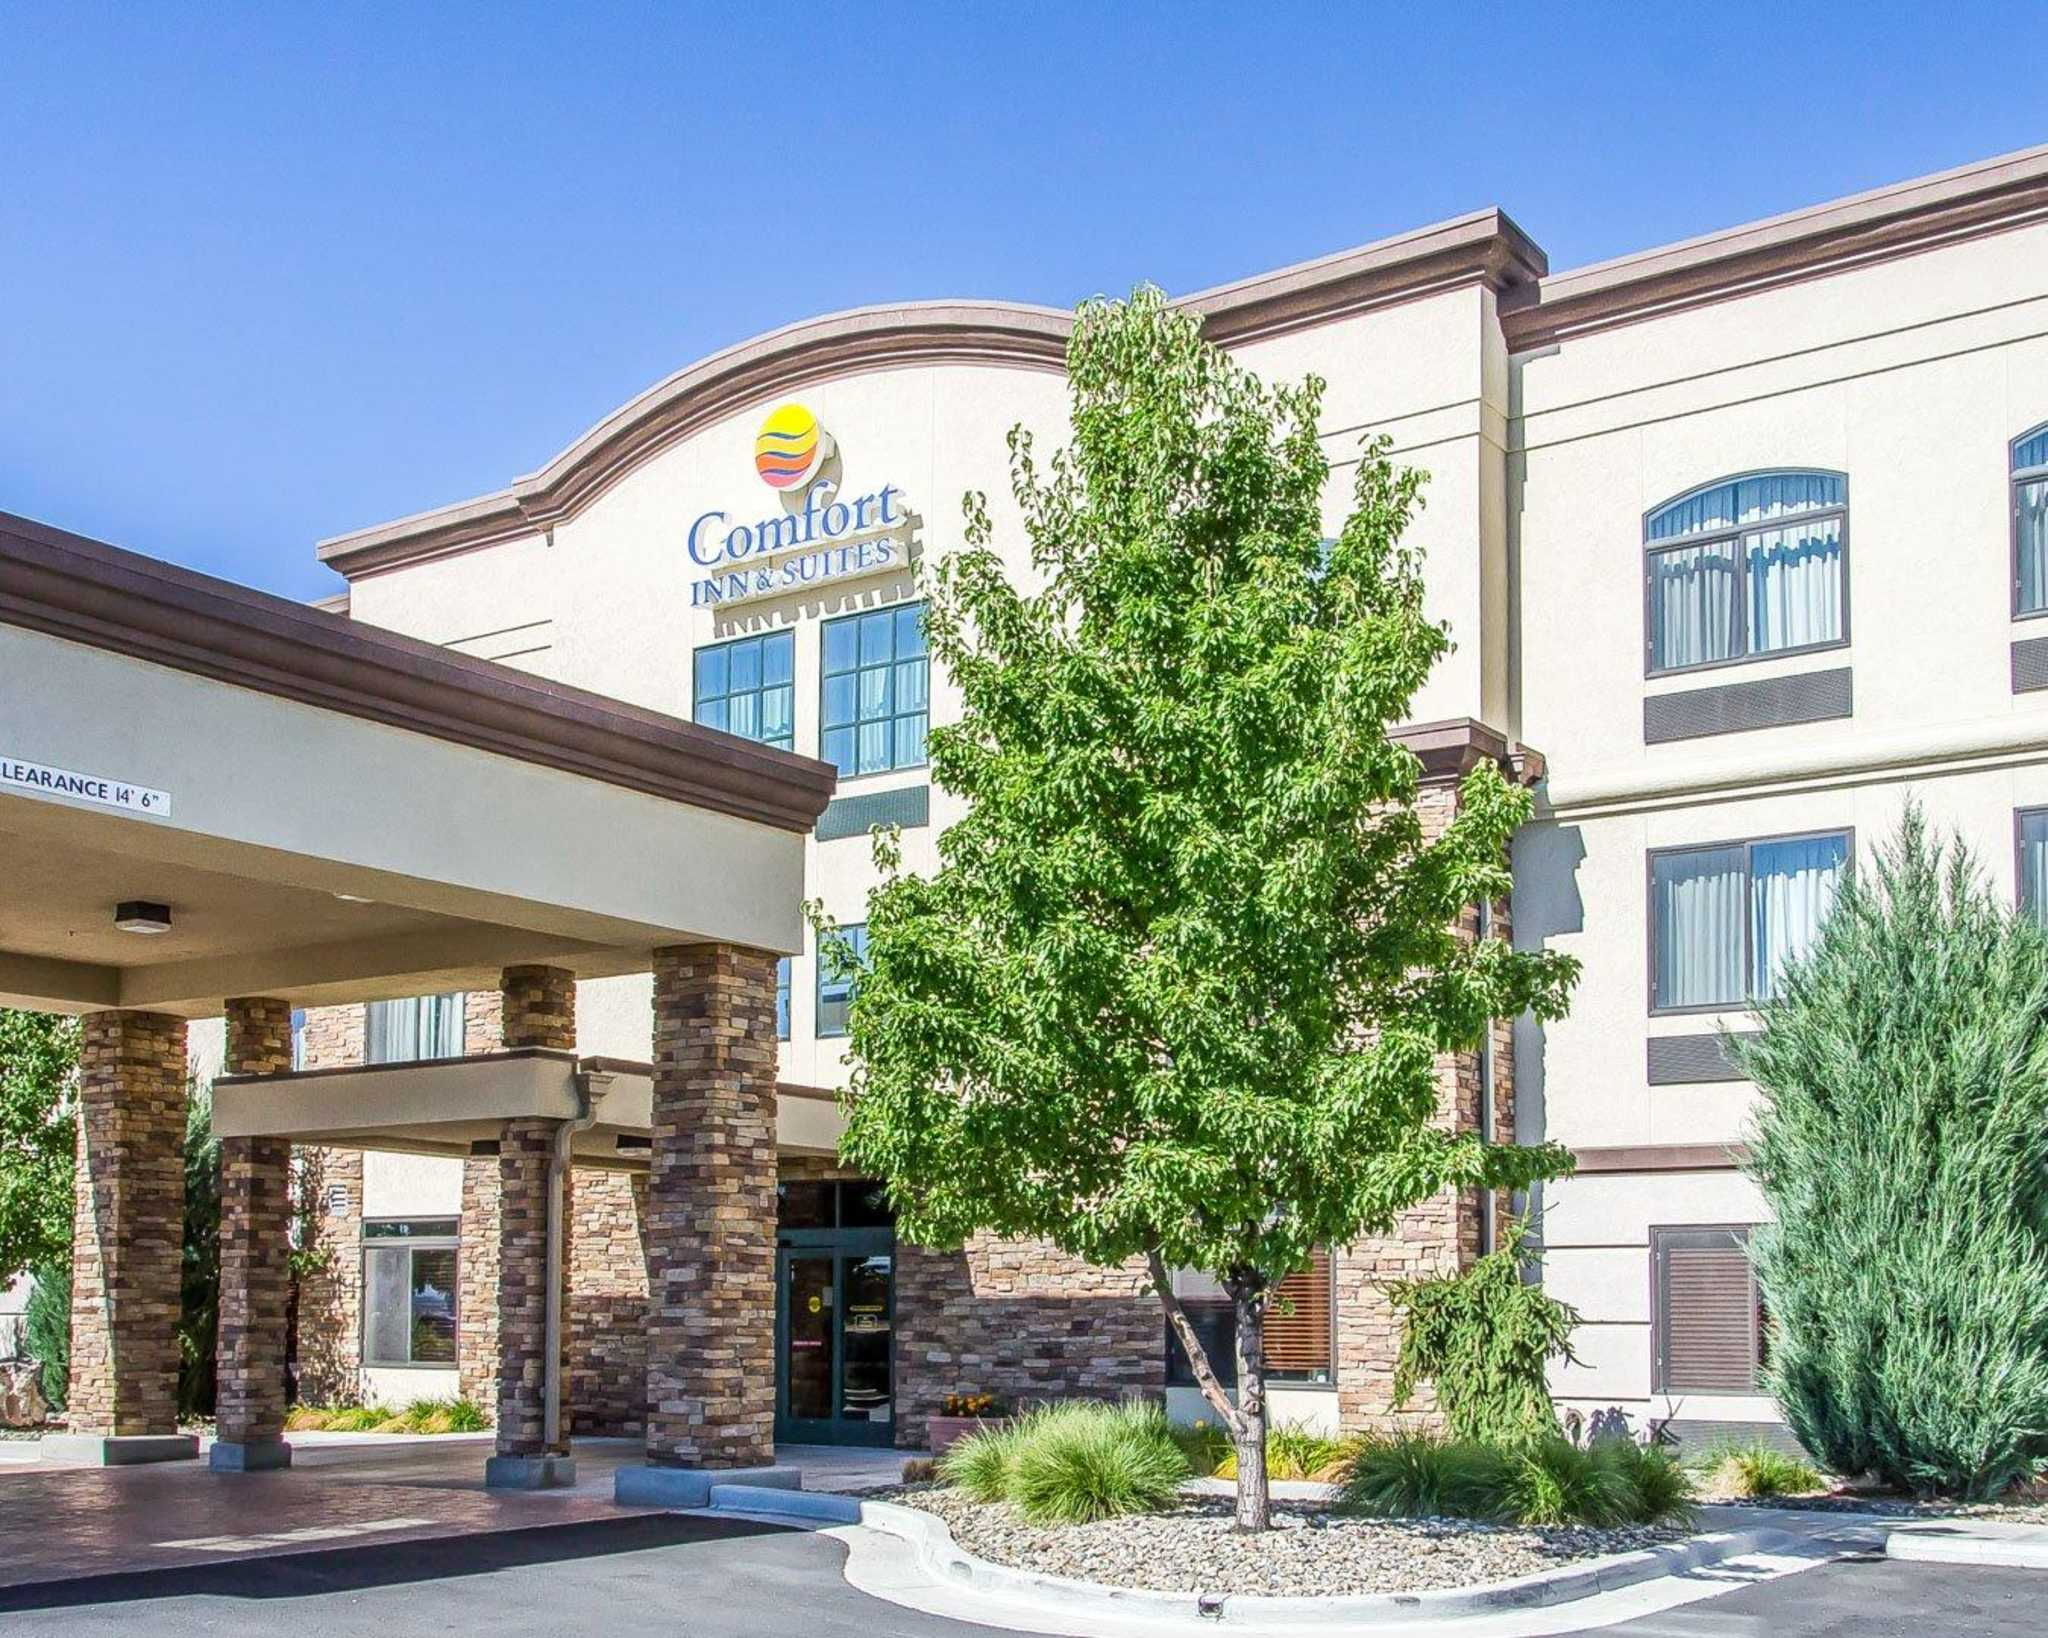 Comfort Inn & Suites Jerome - Twin Falls image 2